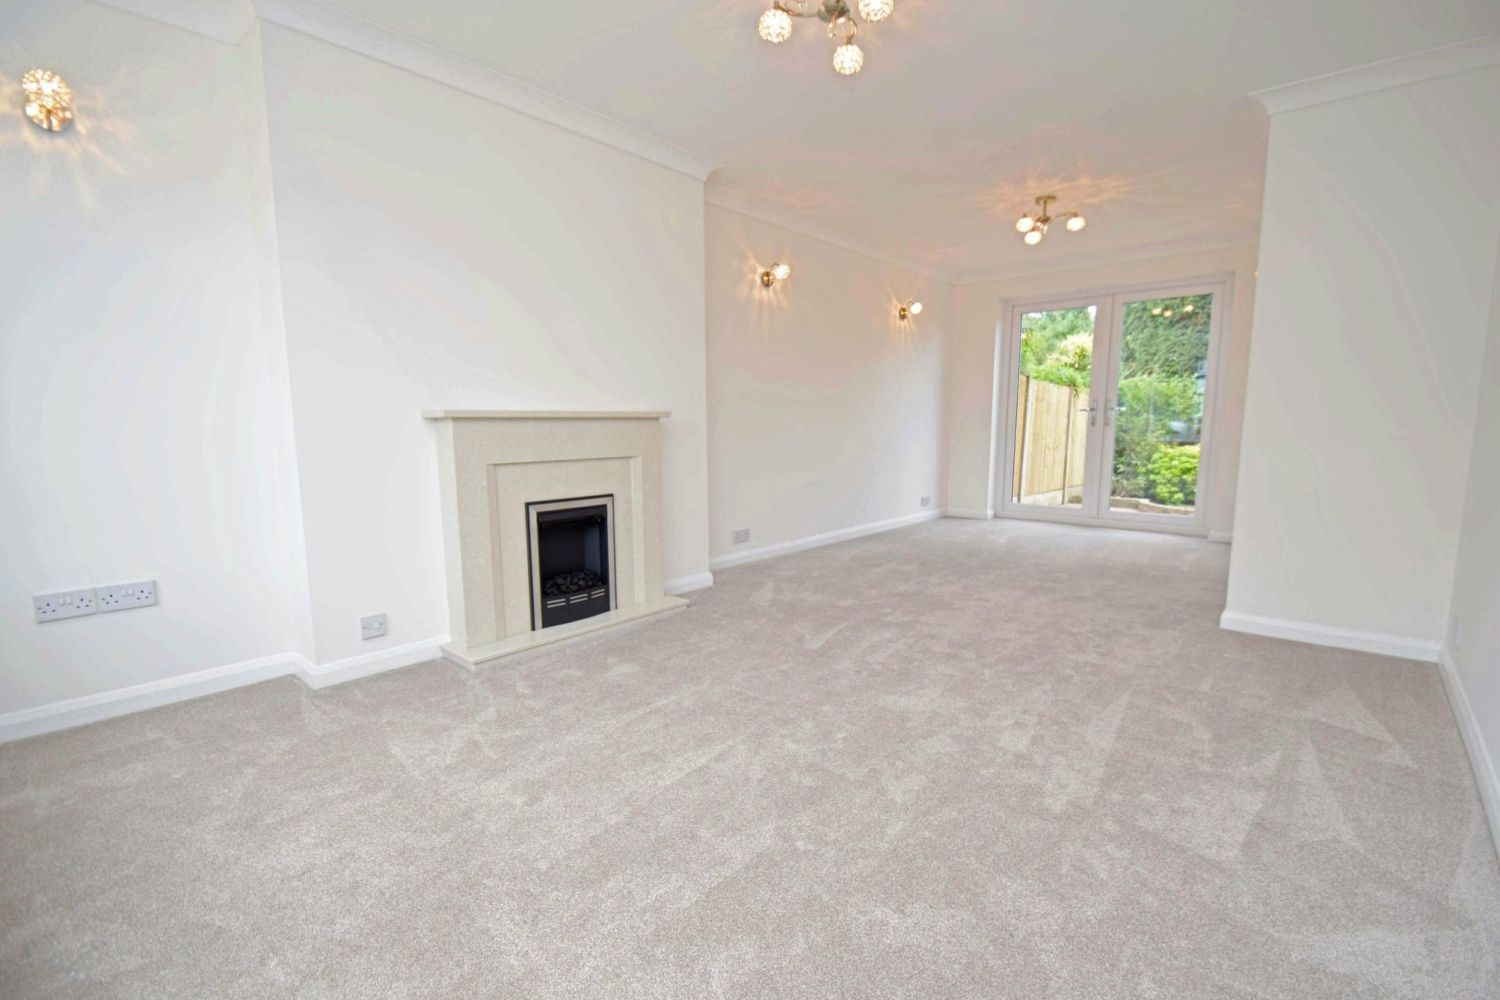 3 bed semi-detached for sale in Beachcroft Road, Wall Heath  - Property Image 2